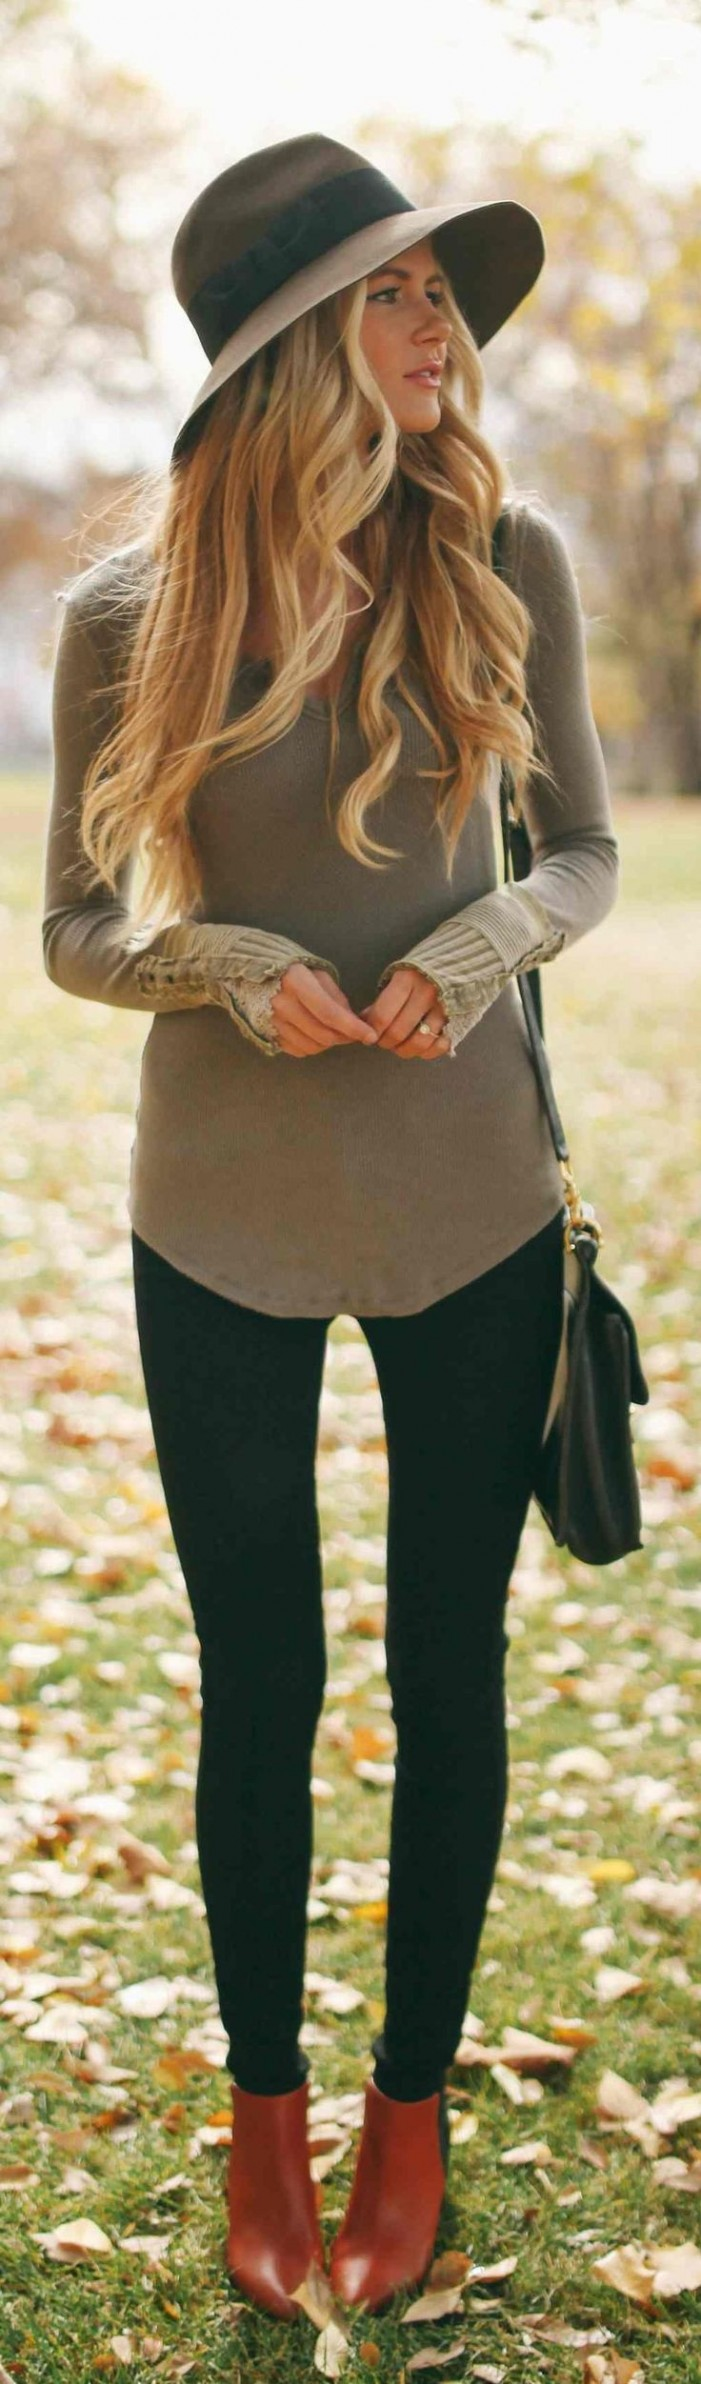 23 Tops to Wear With Leggings This Fall